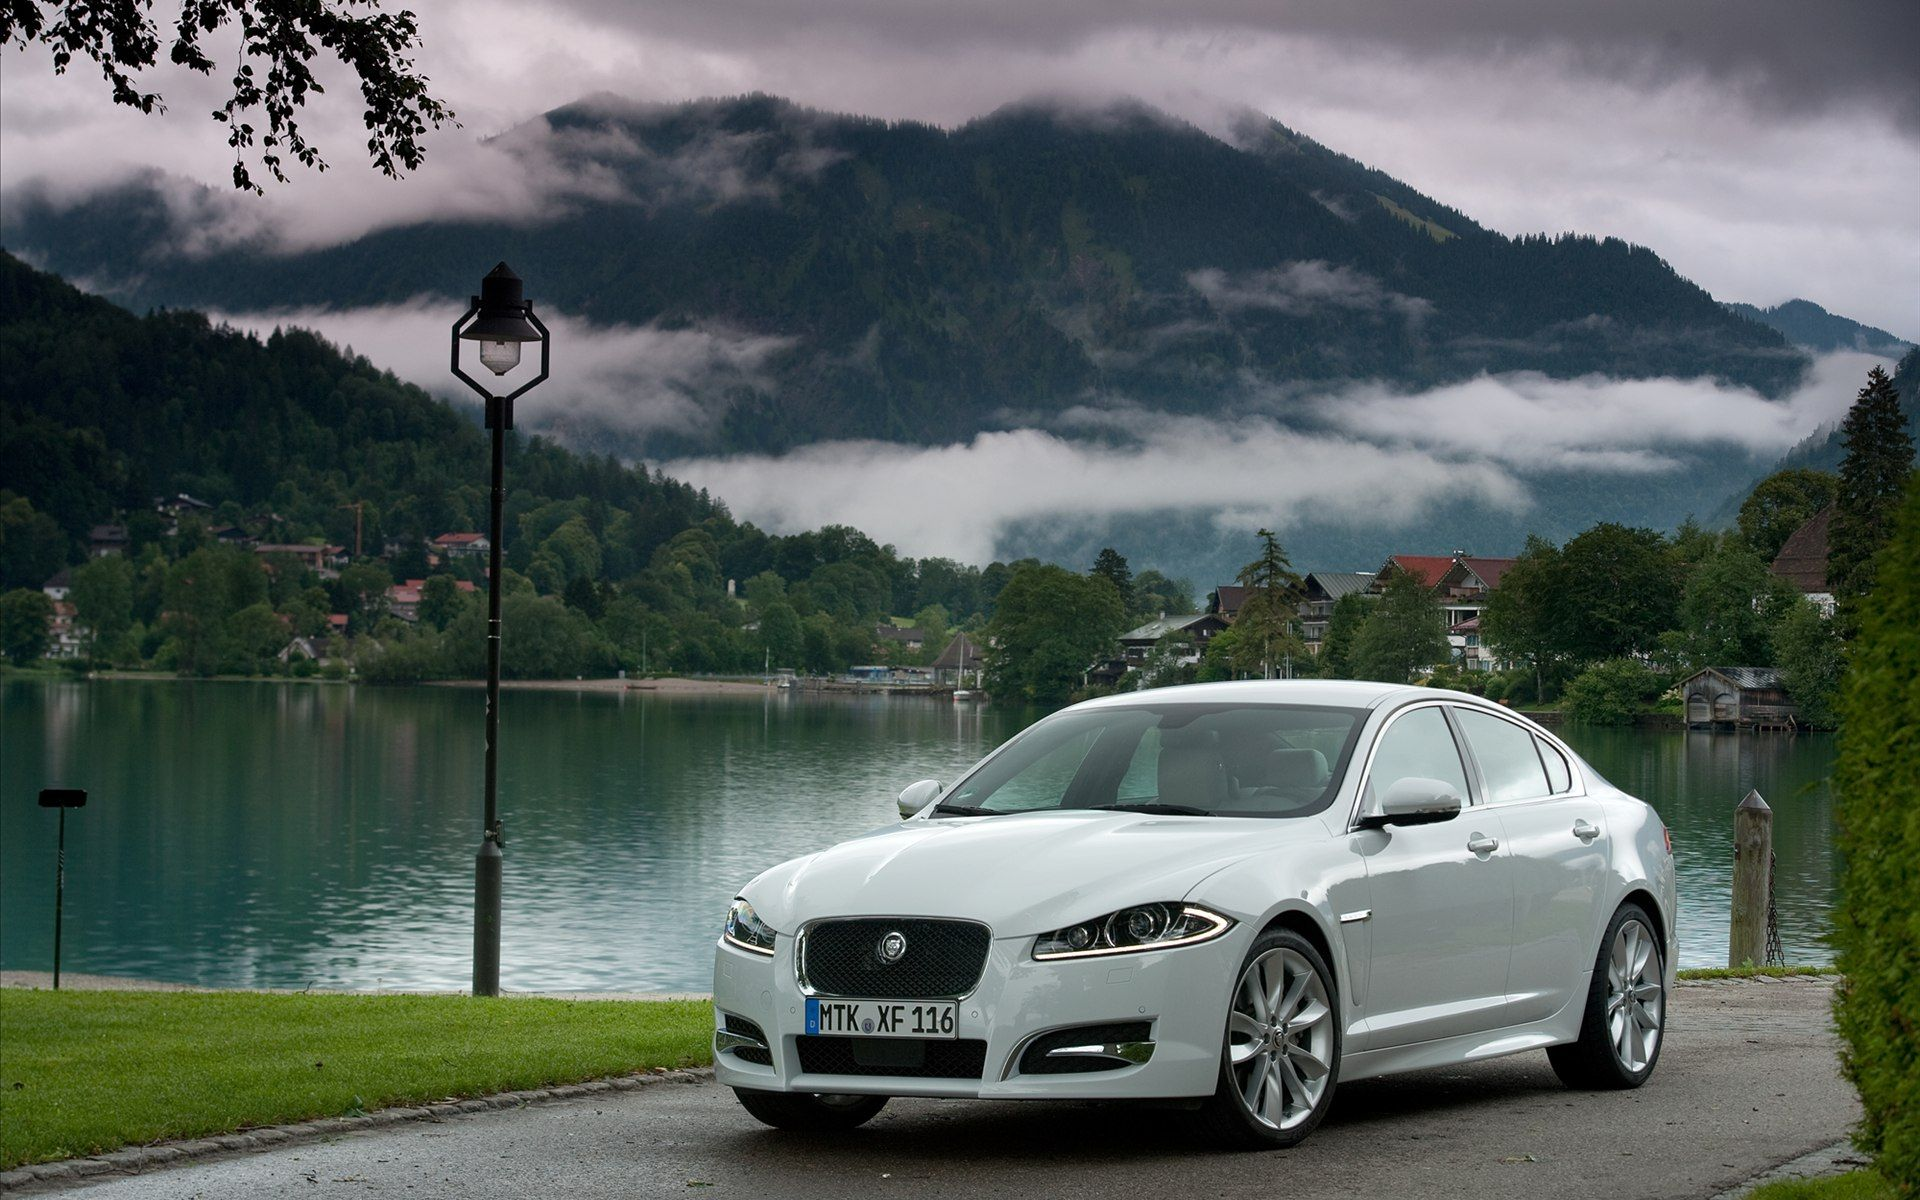 Jaguar XF - Top selling executive sedans and saloons